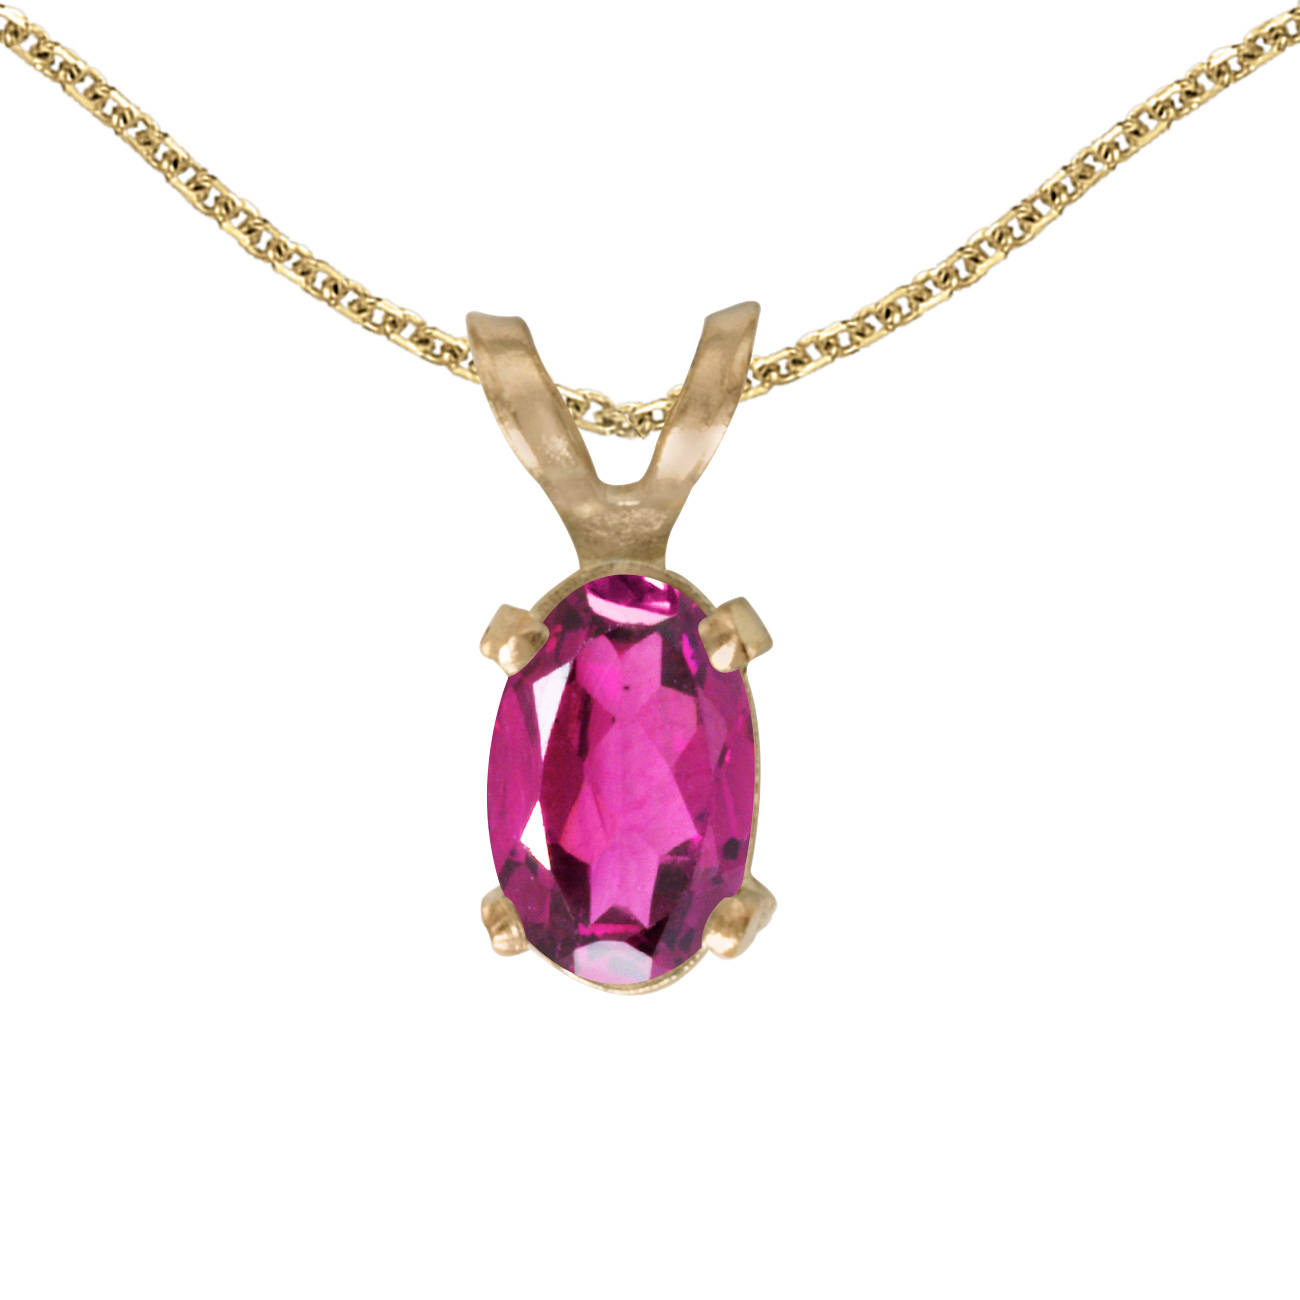 "10k Yellow Gold Oval Pink Topaz Pendant with 16"" Chain by Yellow-Gold Pins"